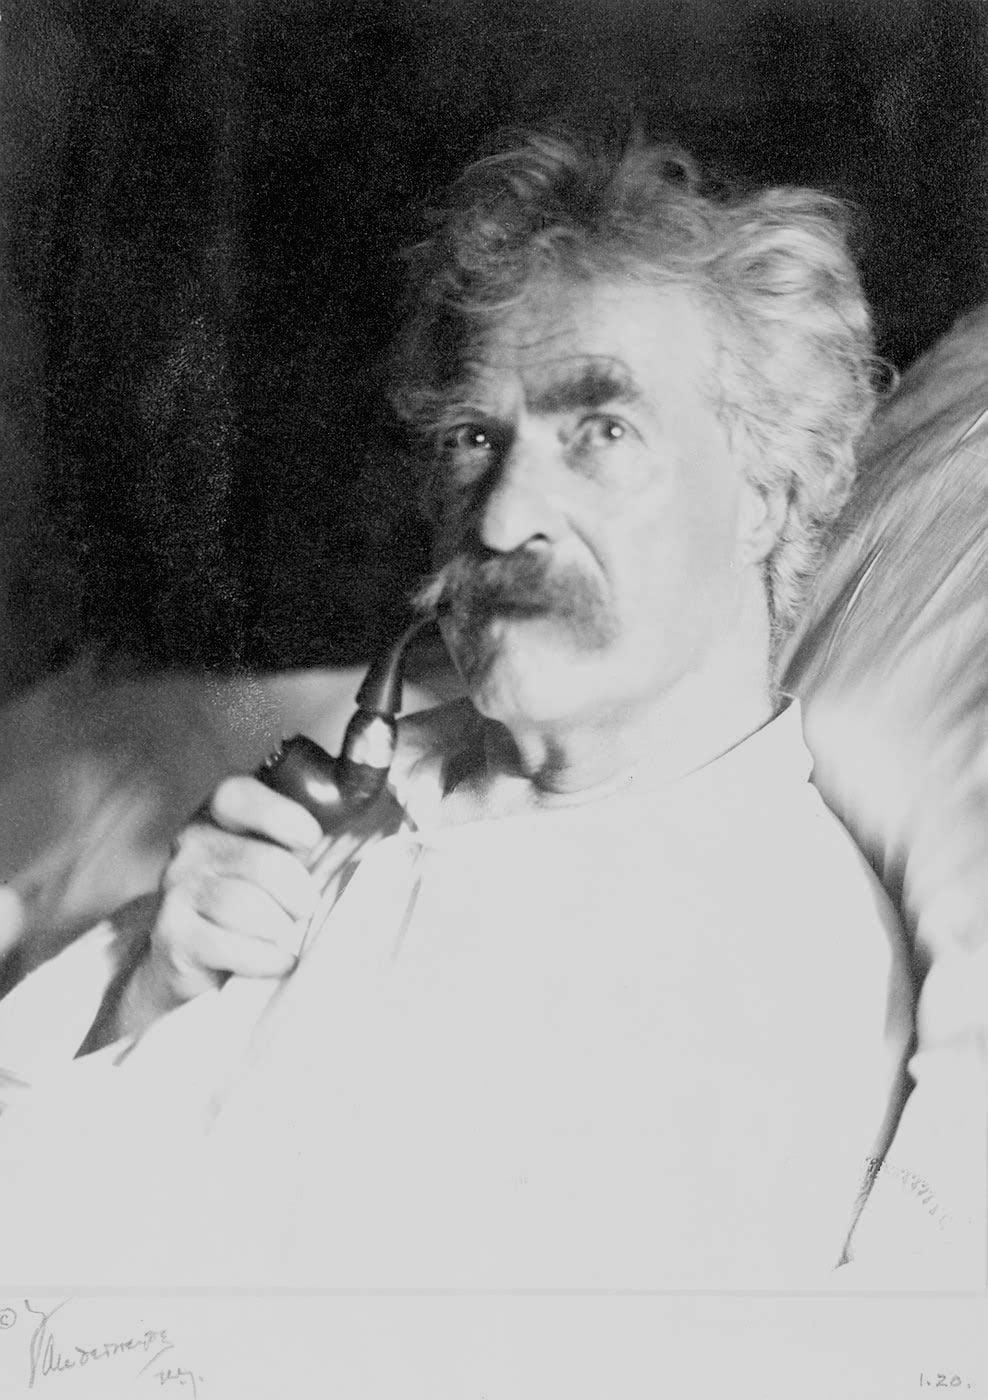 Mark Twain with pipe in 1906 (Wikipedia)